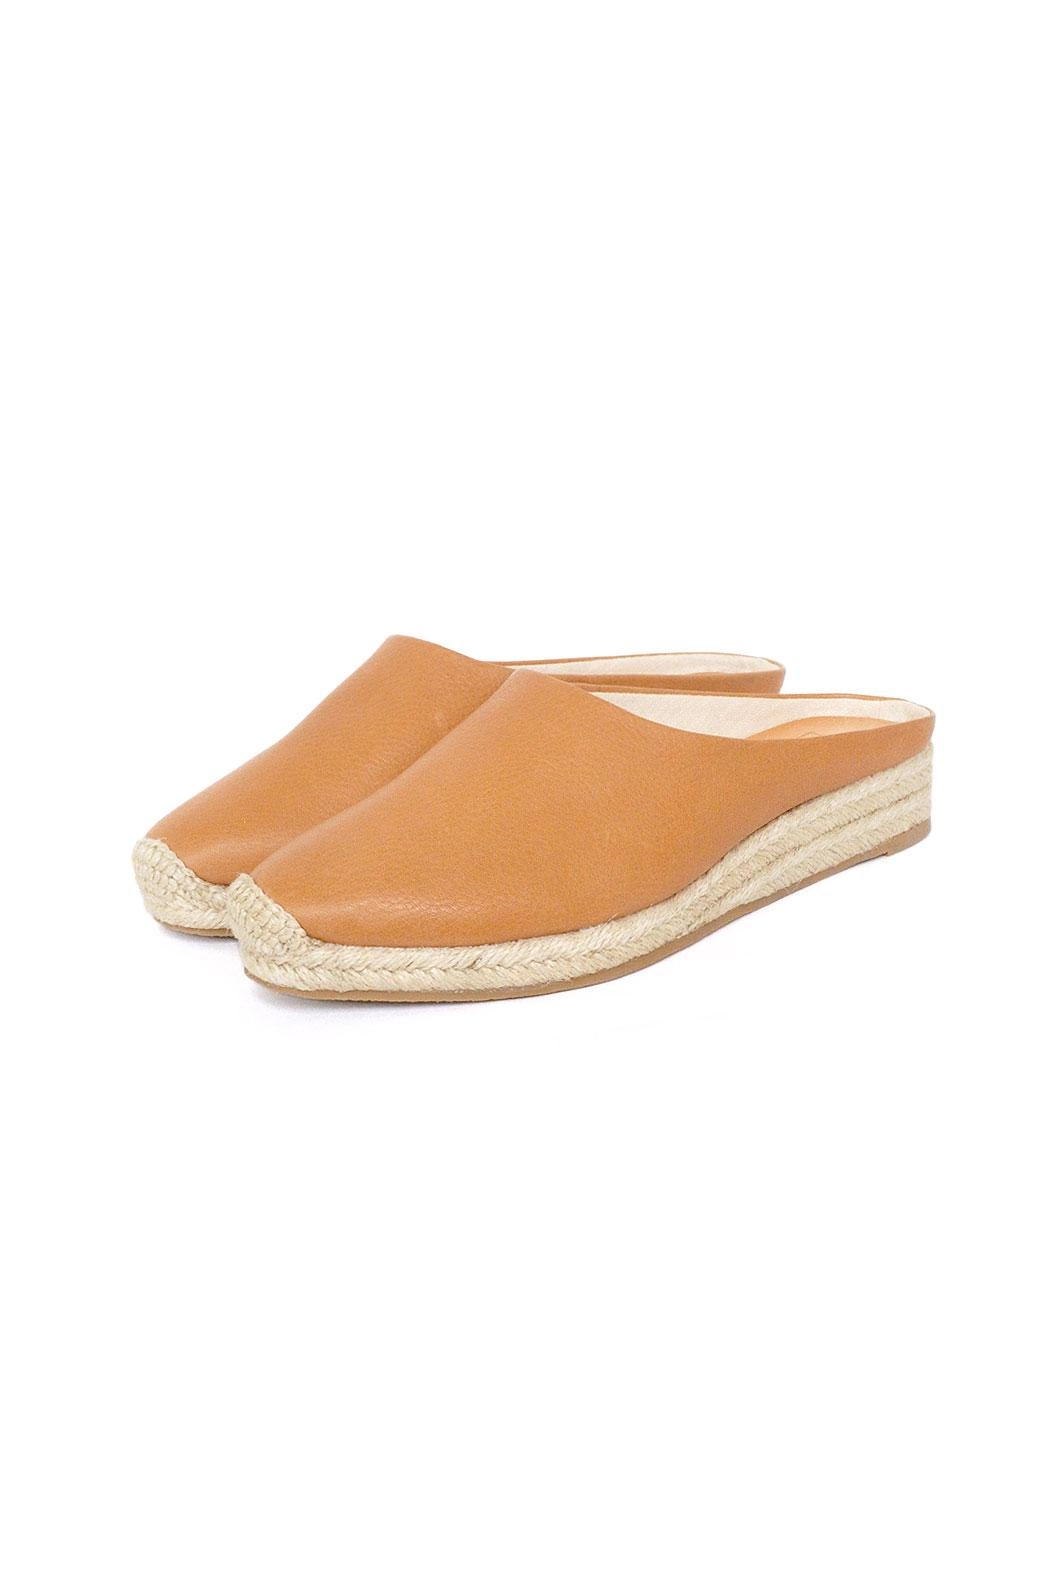 Dolce Vita Tan Leather Espadrilles - Front Full Image